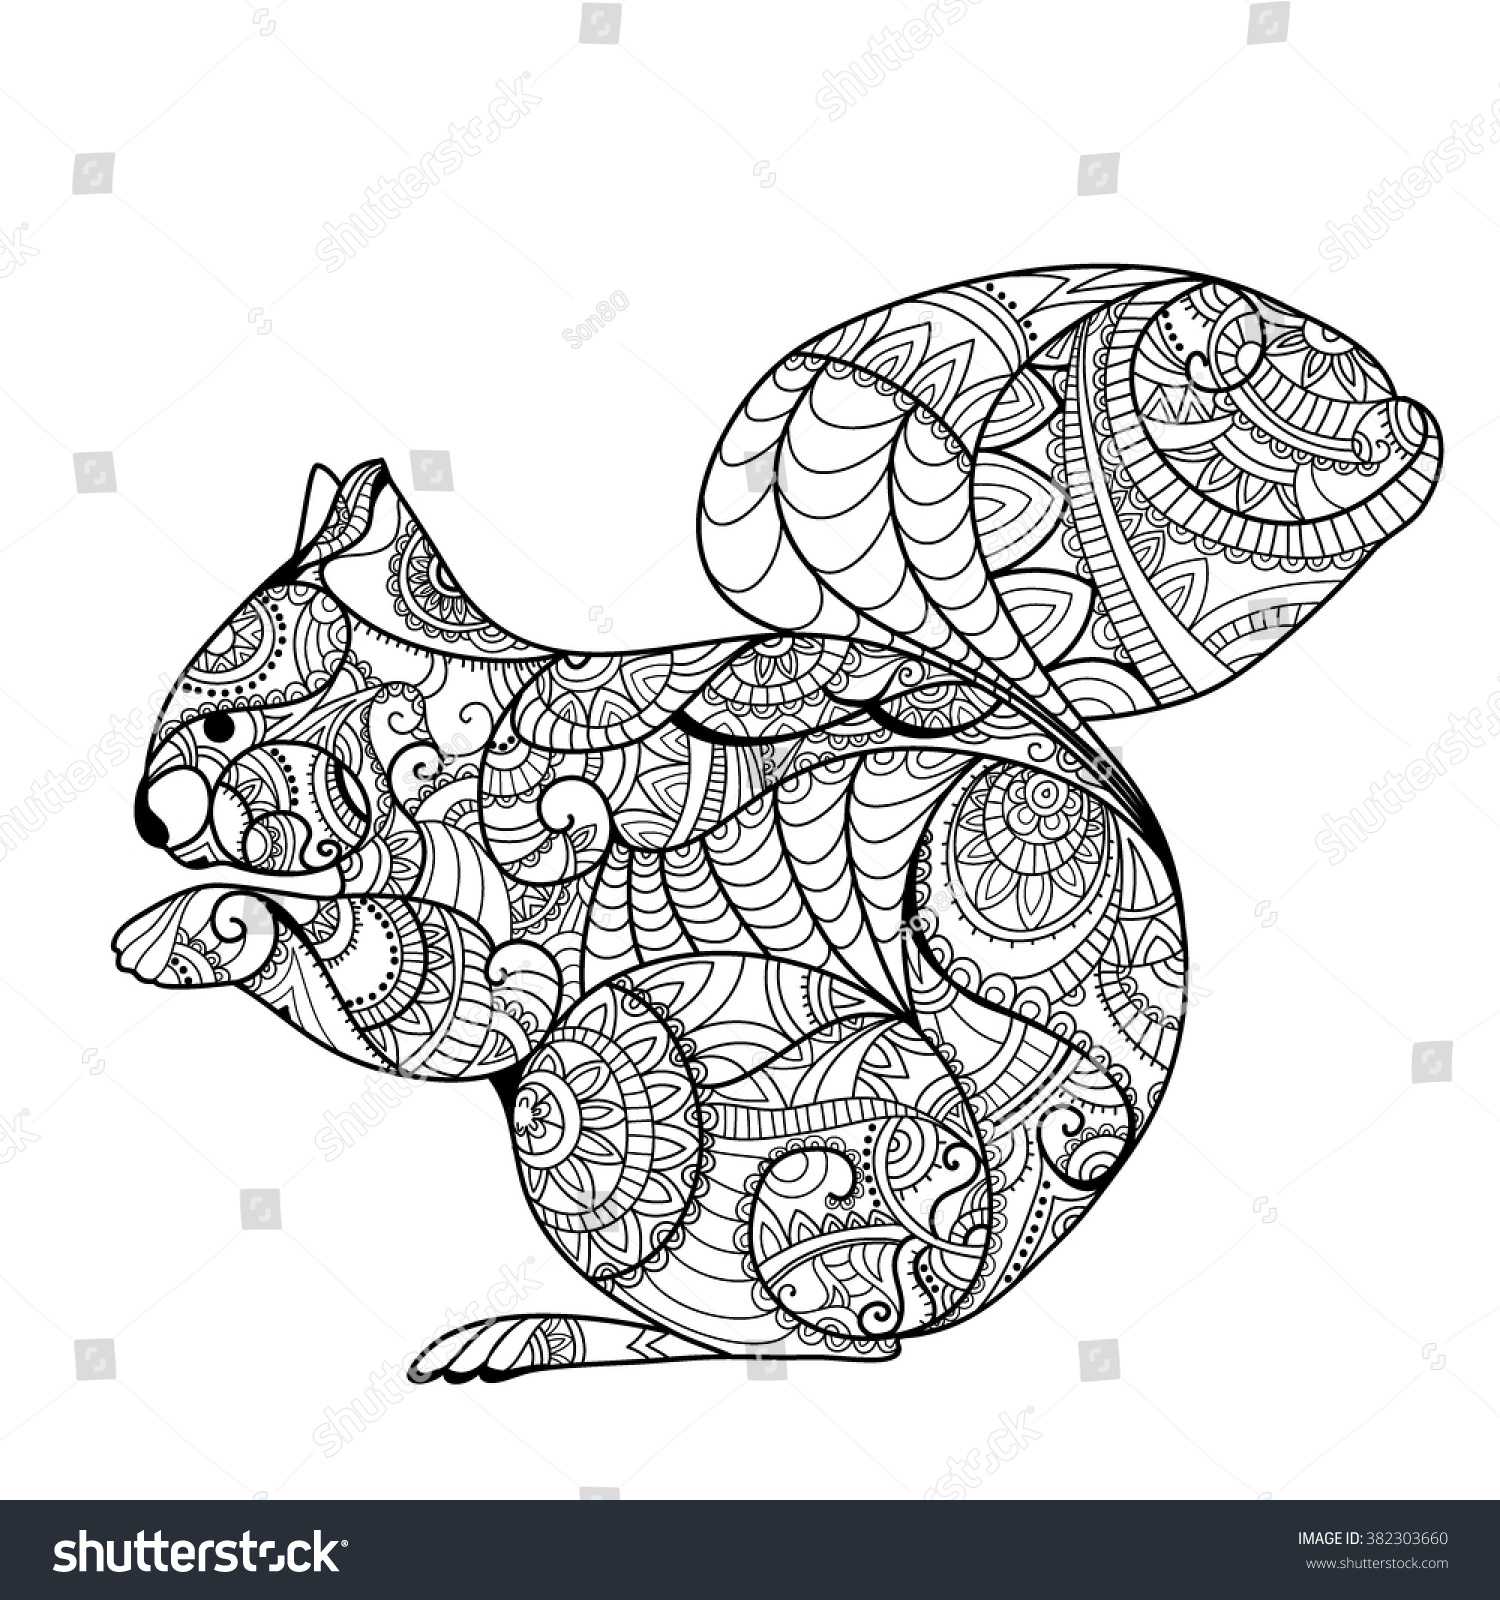 Coloring pages for down syndrome adults - Royalty Free Squirrel Coloring Book Hand Drawn 382303660 Stock